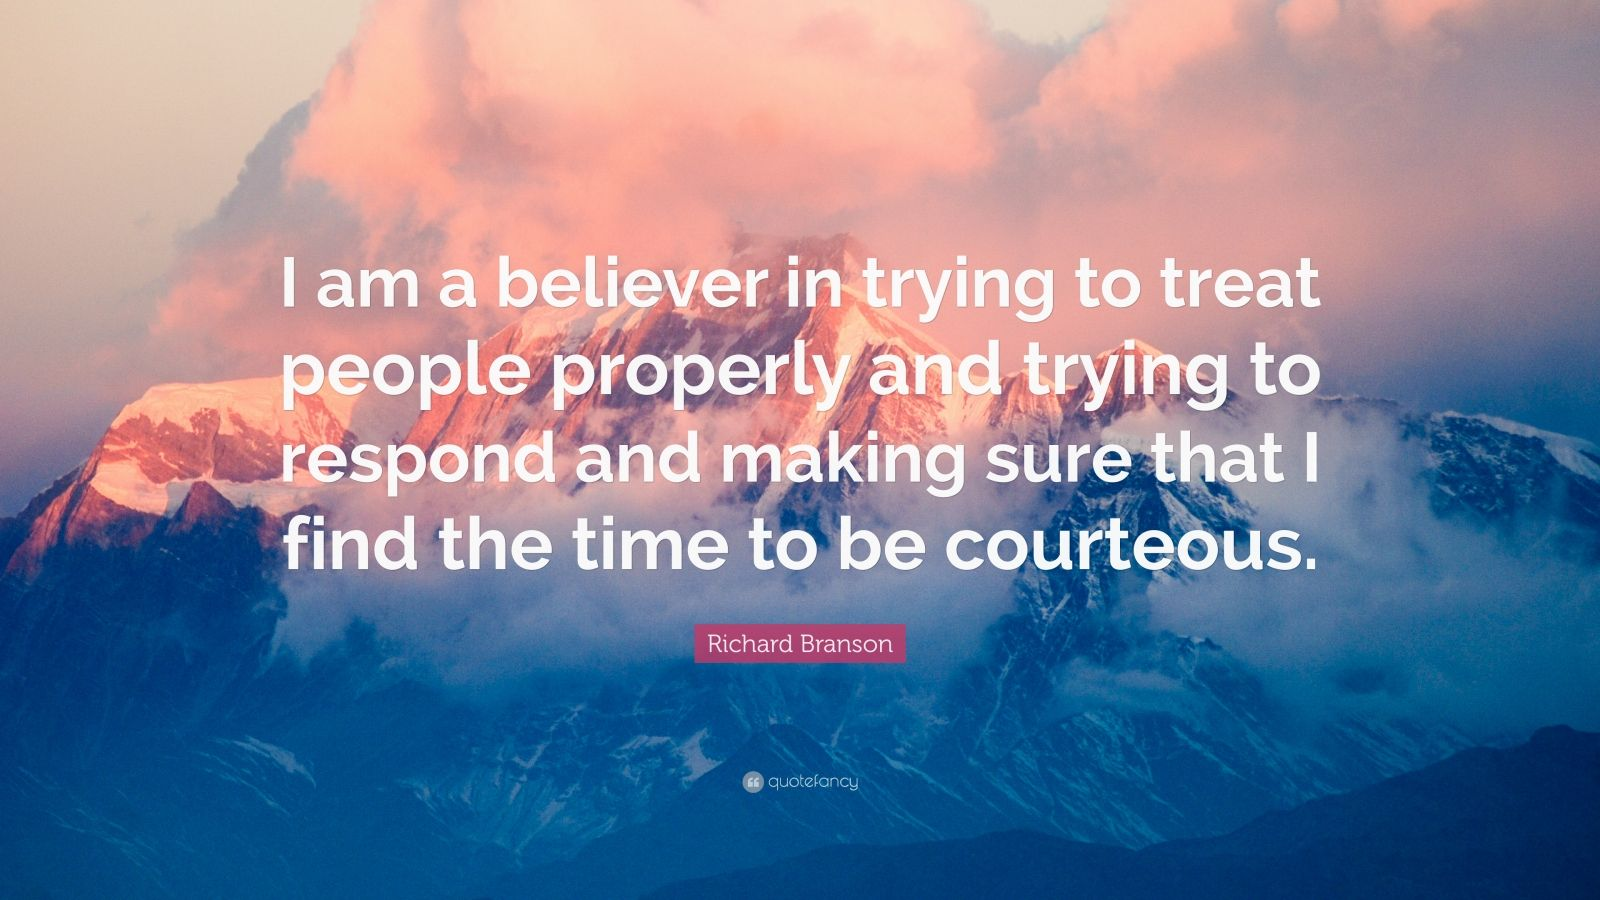 """Richard Branson Quote: """"I am a believer in trying to treat people properly and trying to respond and making sure that I find the time to be courteous."""""""